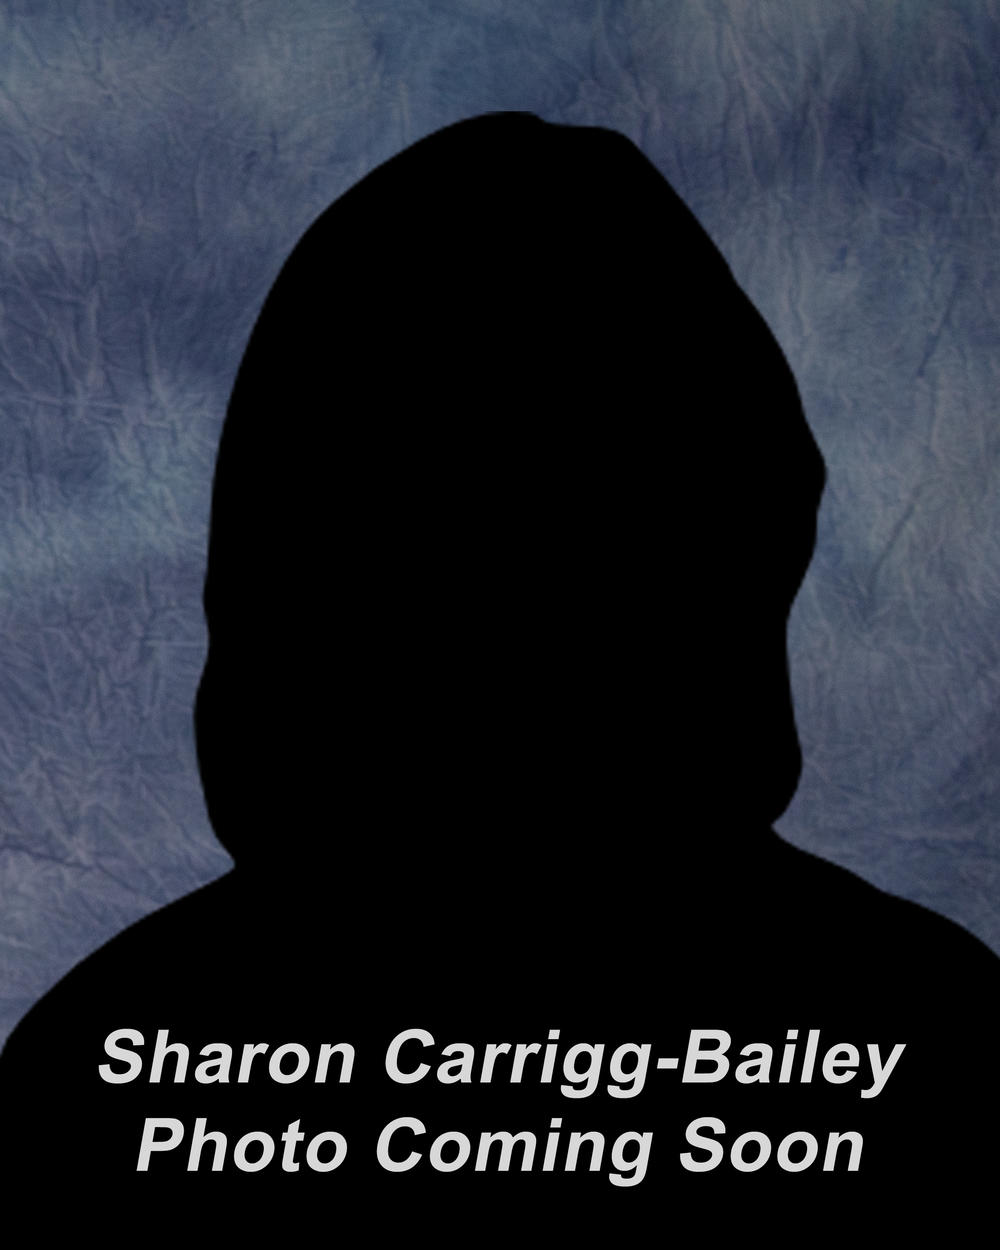 Sharon Carrigg-Gailey